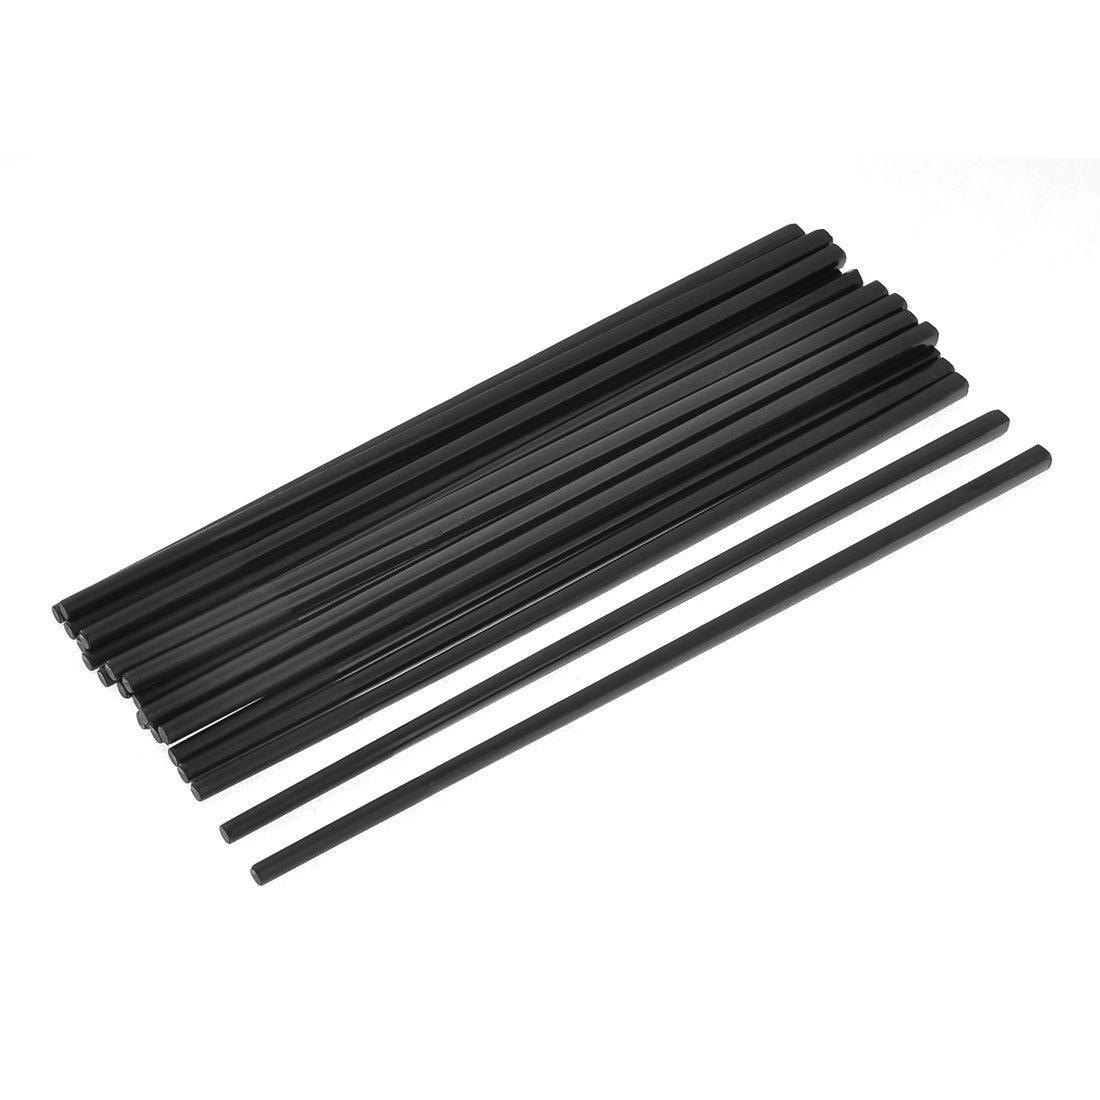 TOOGOO R 5pcs Chinese Chopsticks Tableware 9 5 Inch 10 Pairs Black